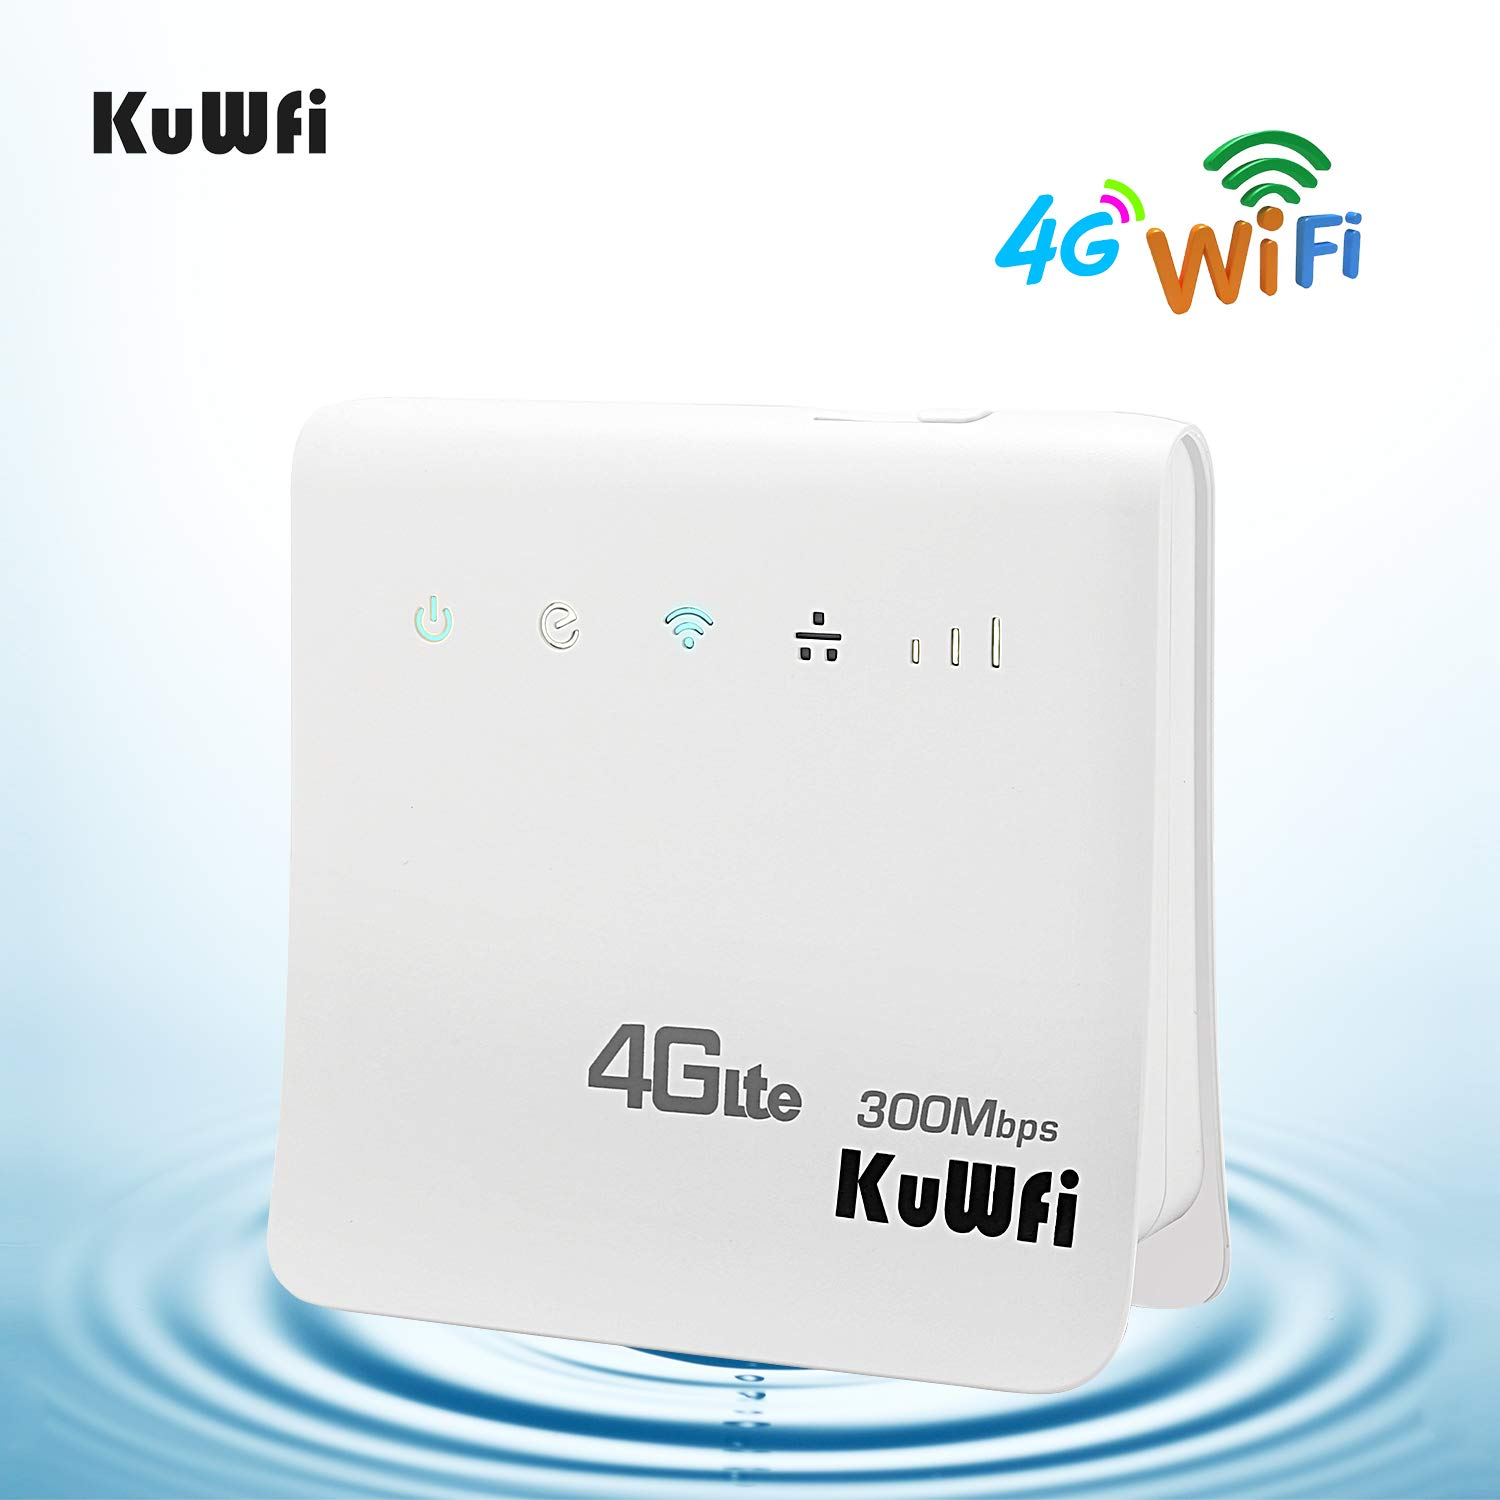 KuWFi 4G WiFi Router Unlocked 300Mbps LTE CPE Mobile WiFi Wireless Routers  Work with Optus/Telstra/Virgin Mobile/Vodafone SIM Card Support 32 Users